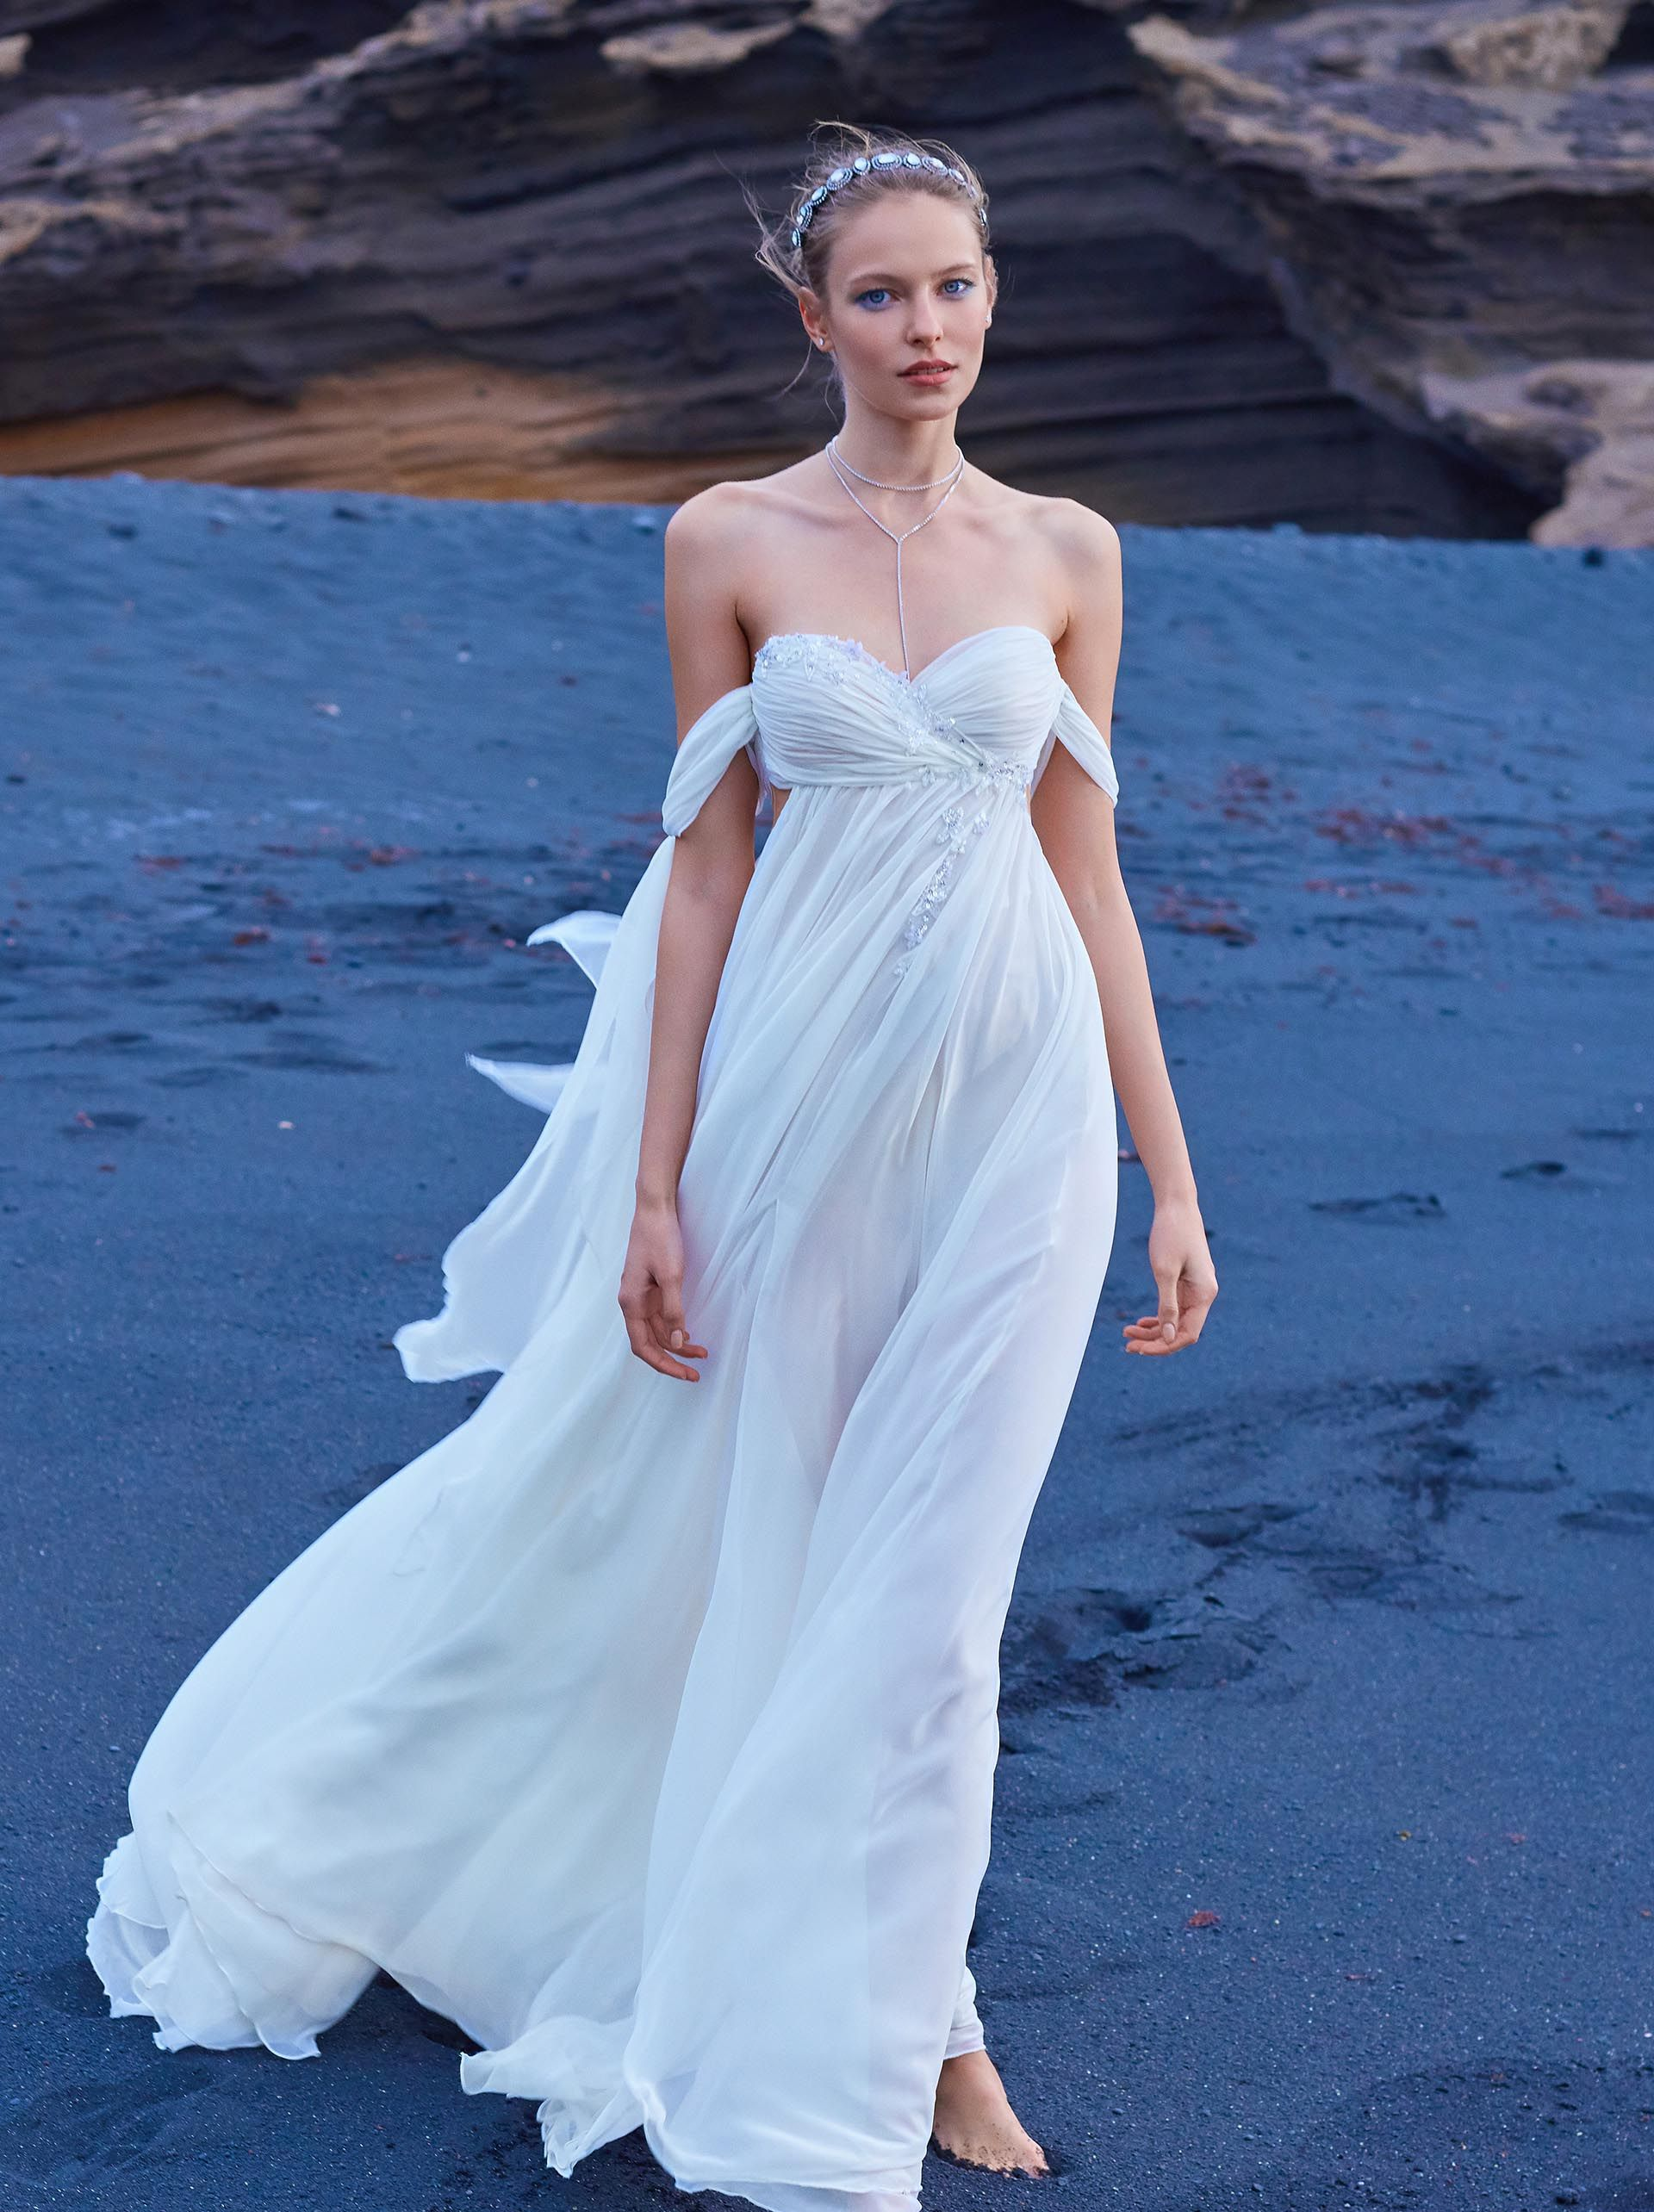 9845cc6c7a3 V - Bridal Dresses - Galia Lahav. See this Galia page. View product   GALA -1016